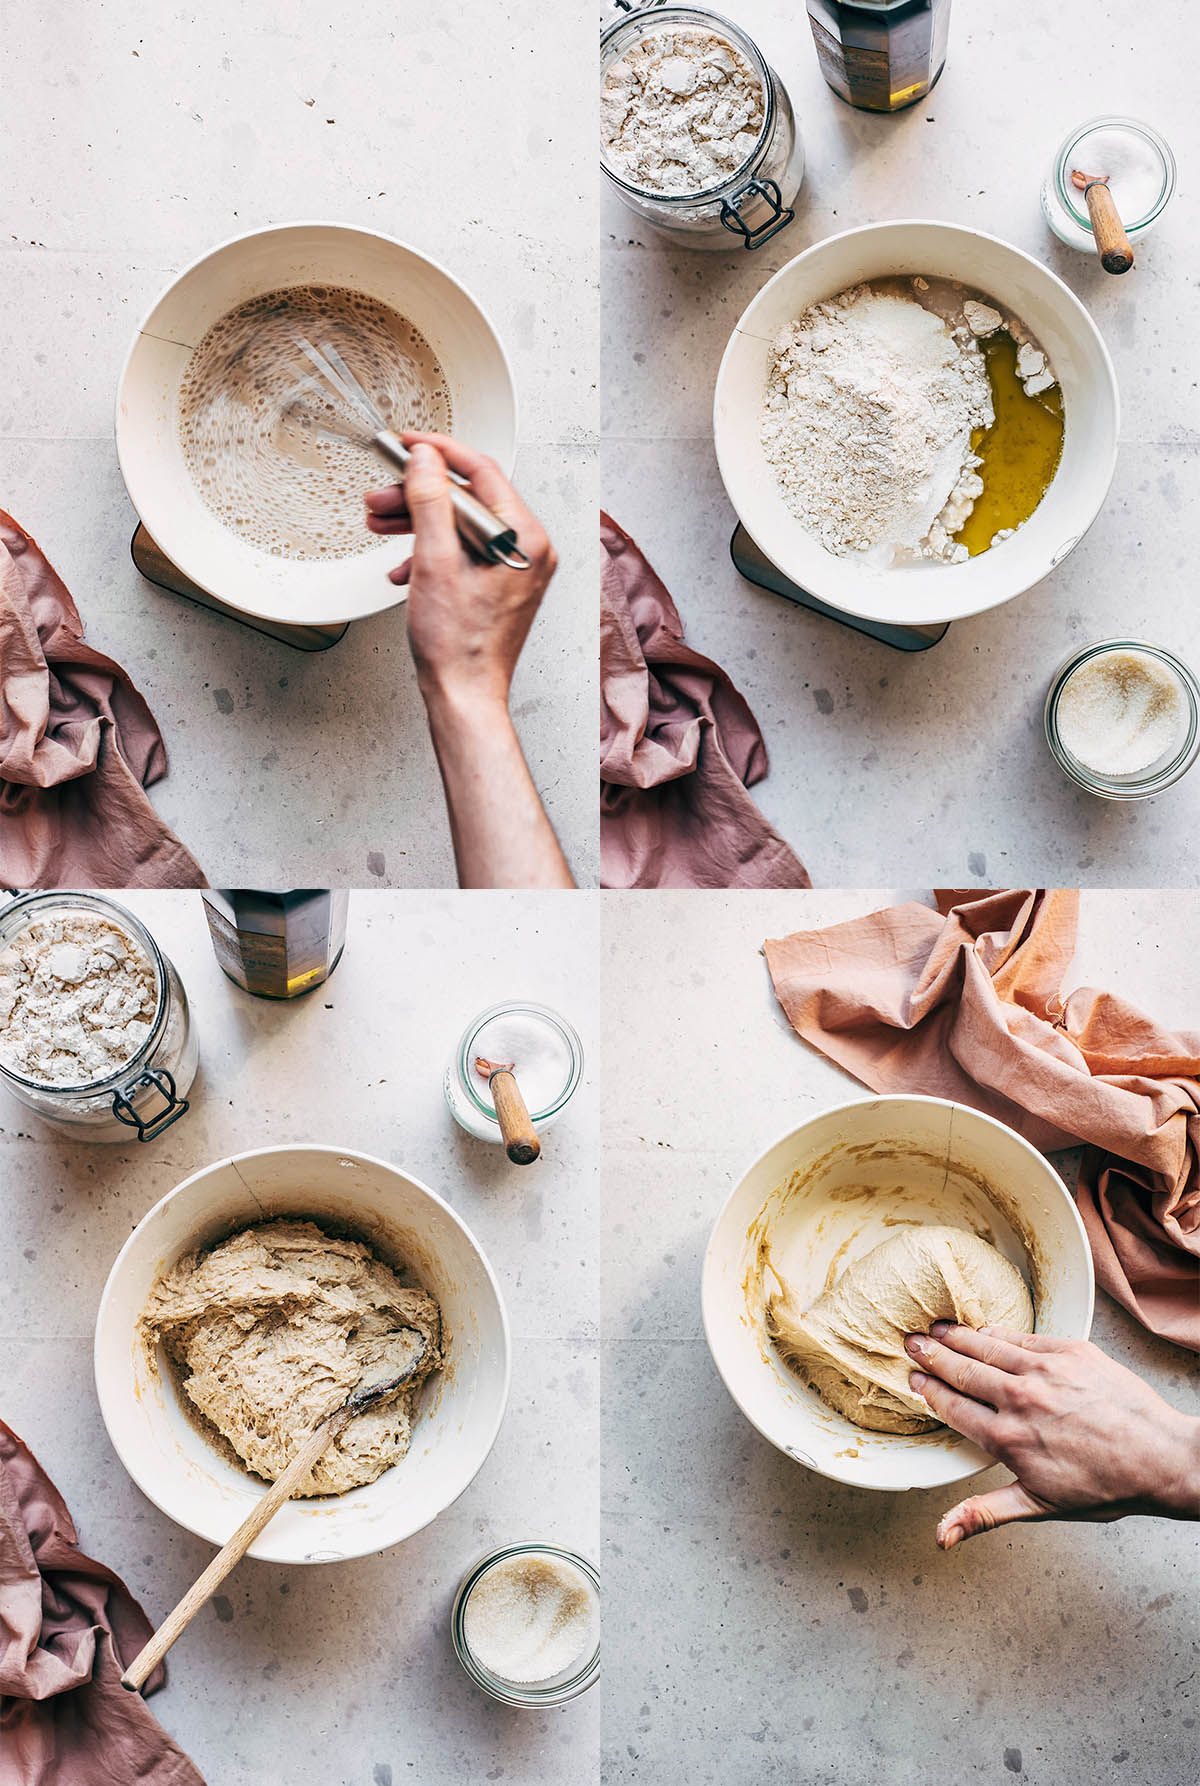 Four images showing steps for sourdough naan dough being mixed.